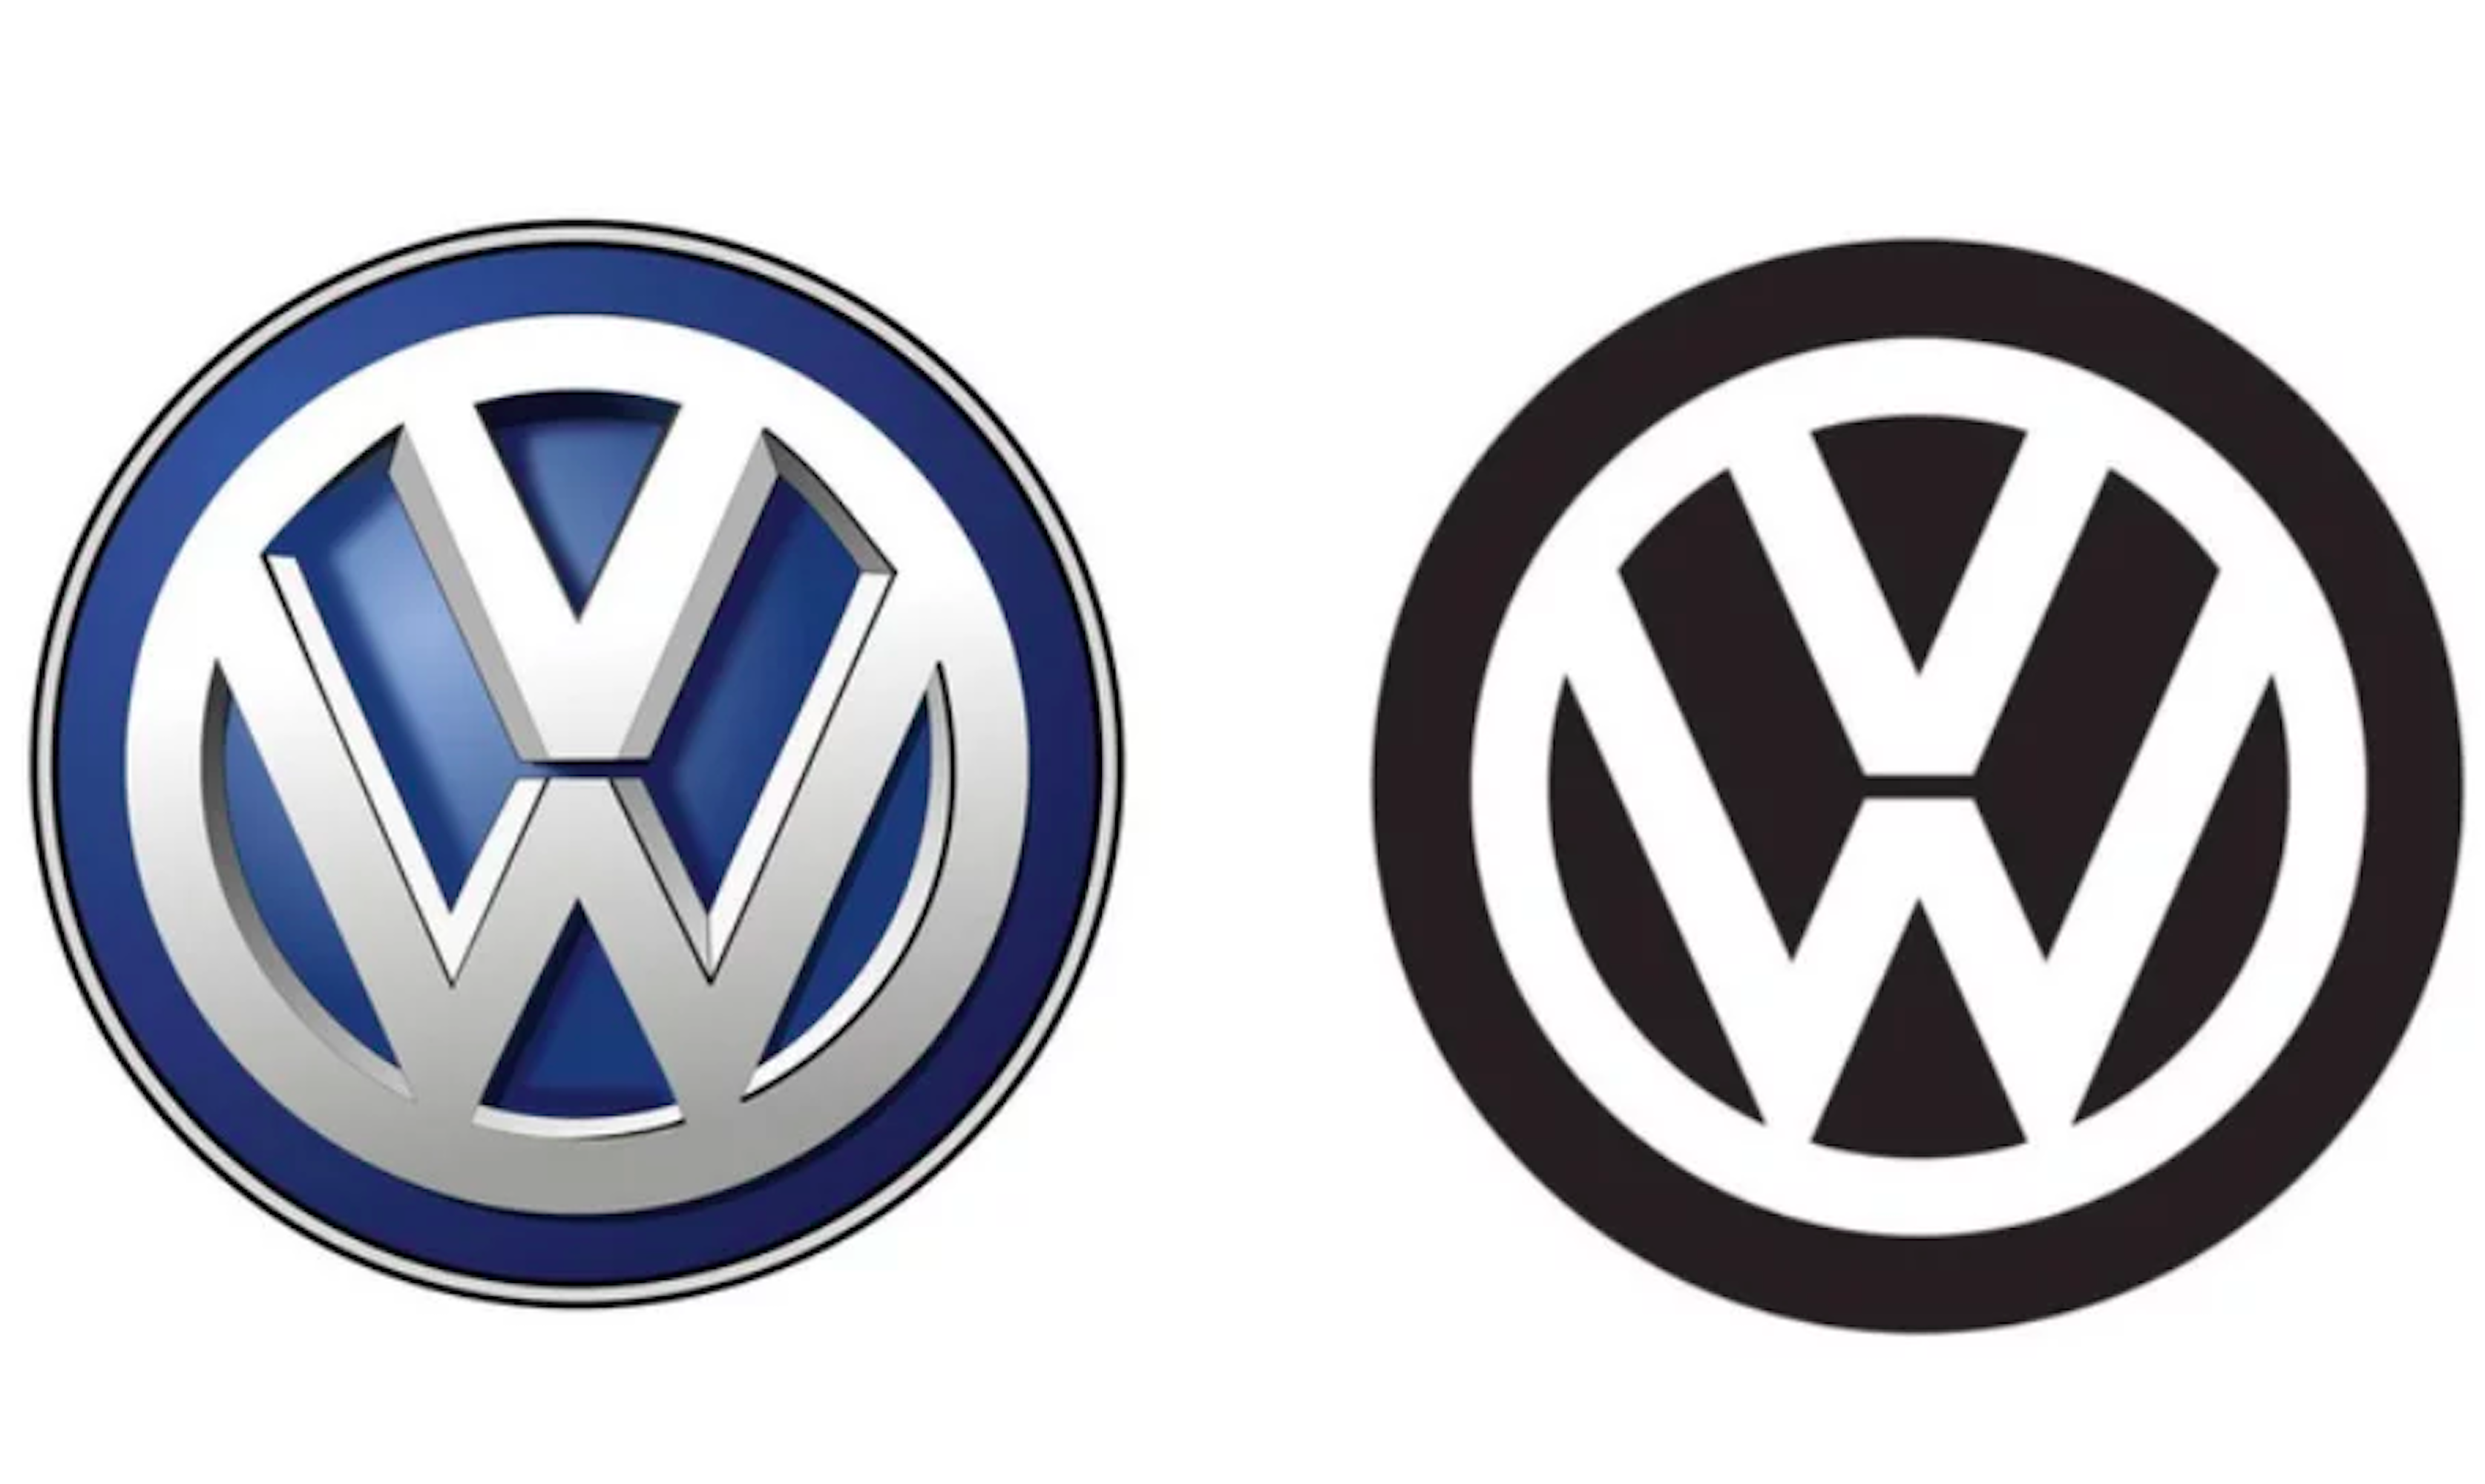 VW is changing its logo for the first time since 2000, but it's not.